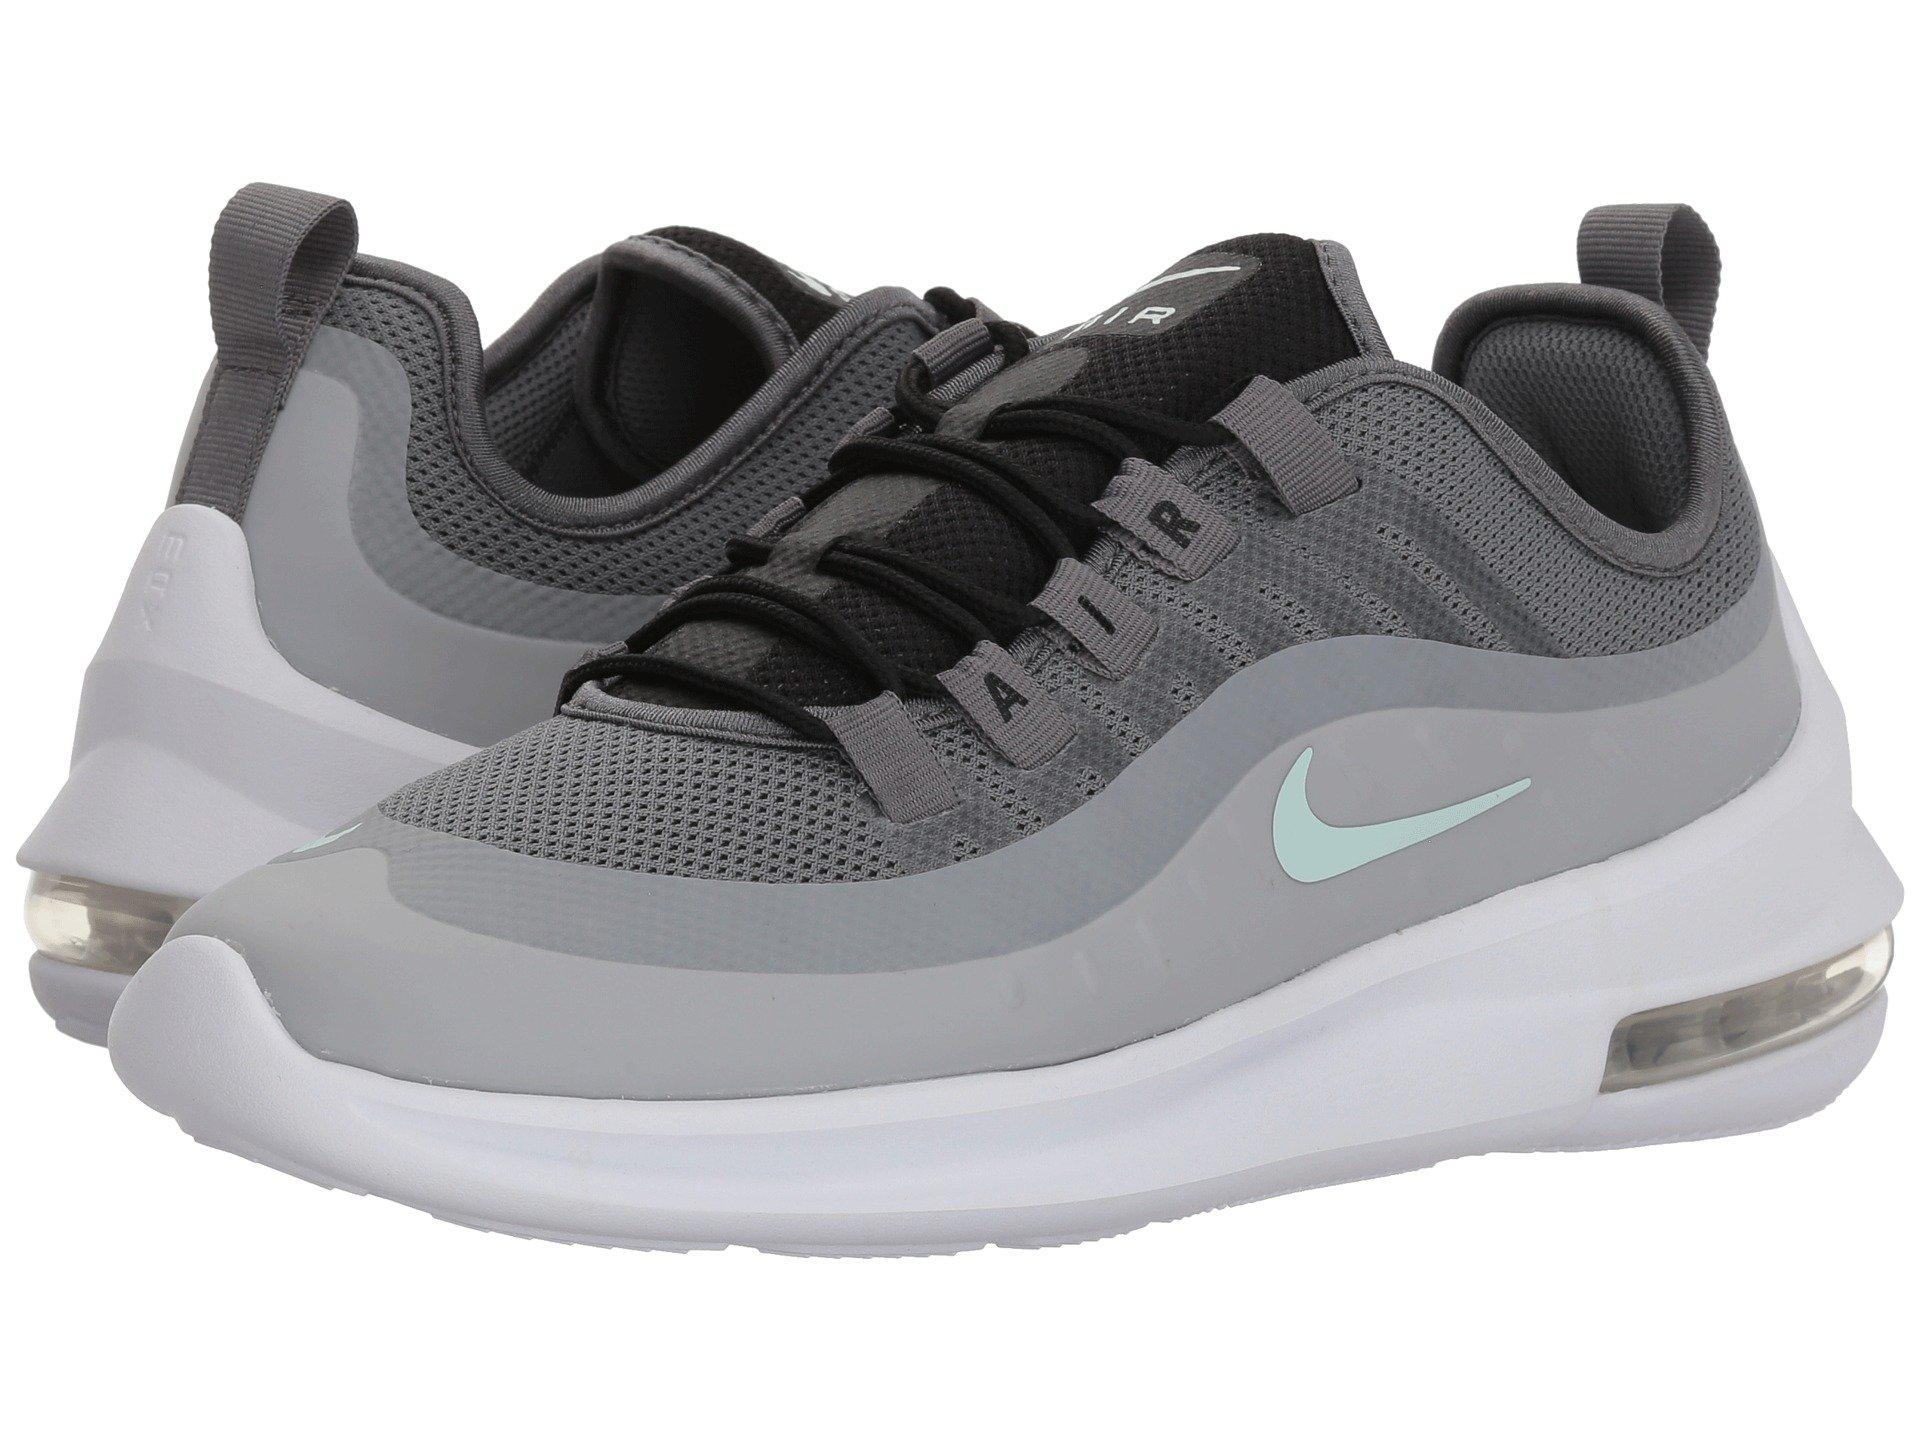 Lyst - Nike Air Max Axis (white white black) Women s Classic Shoes ... 205a584d1